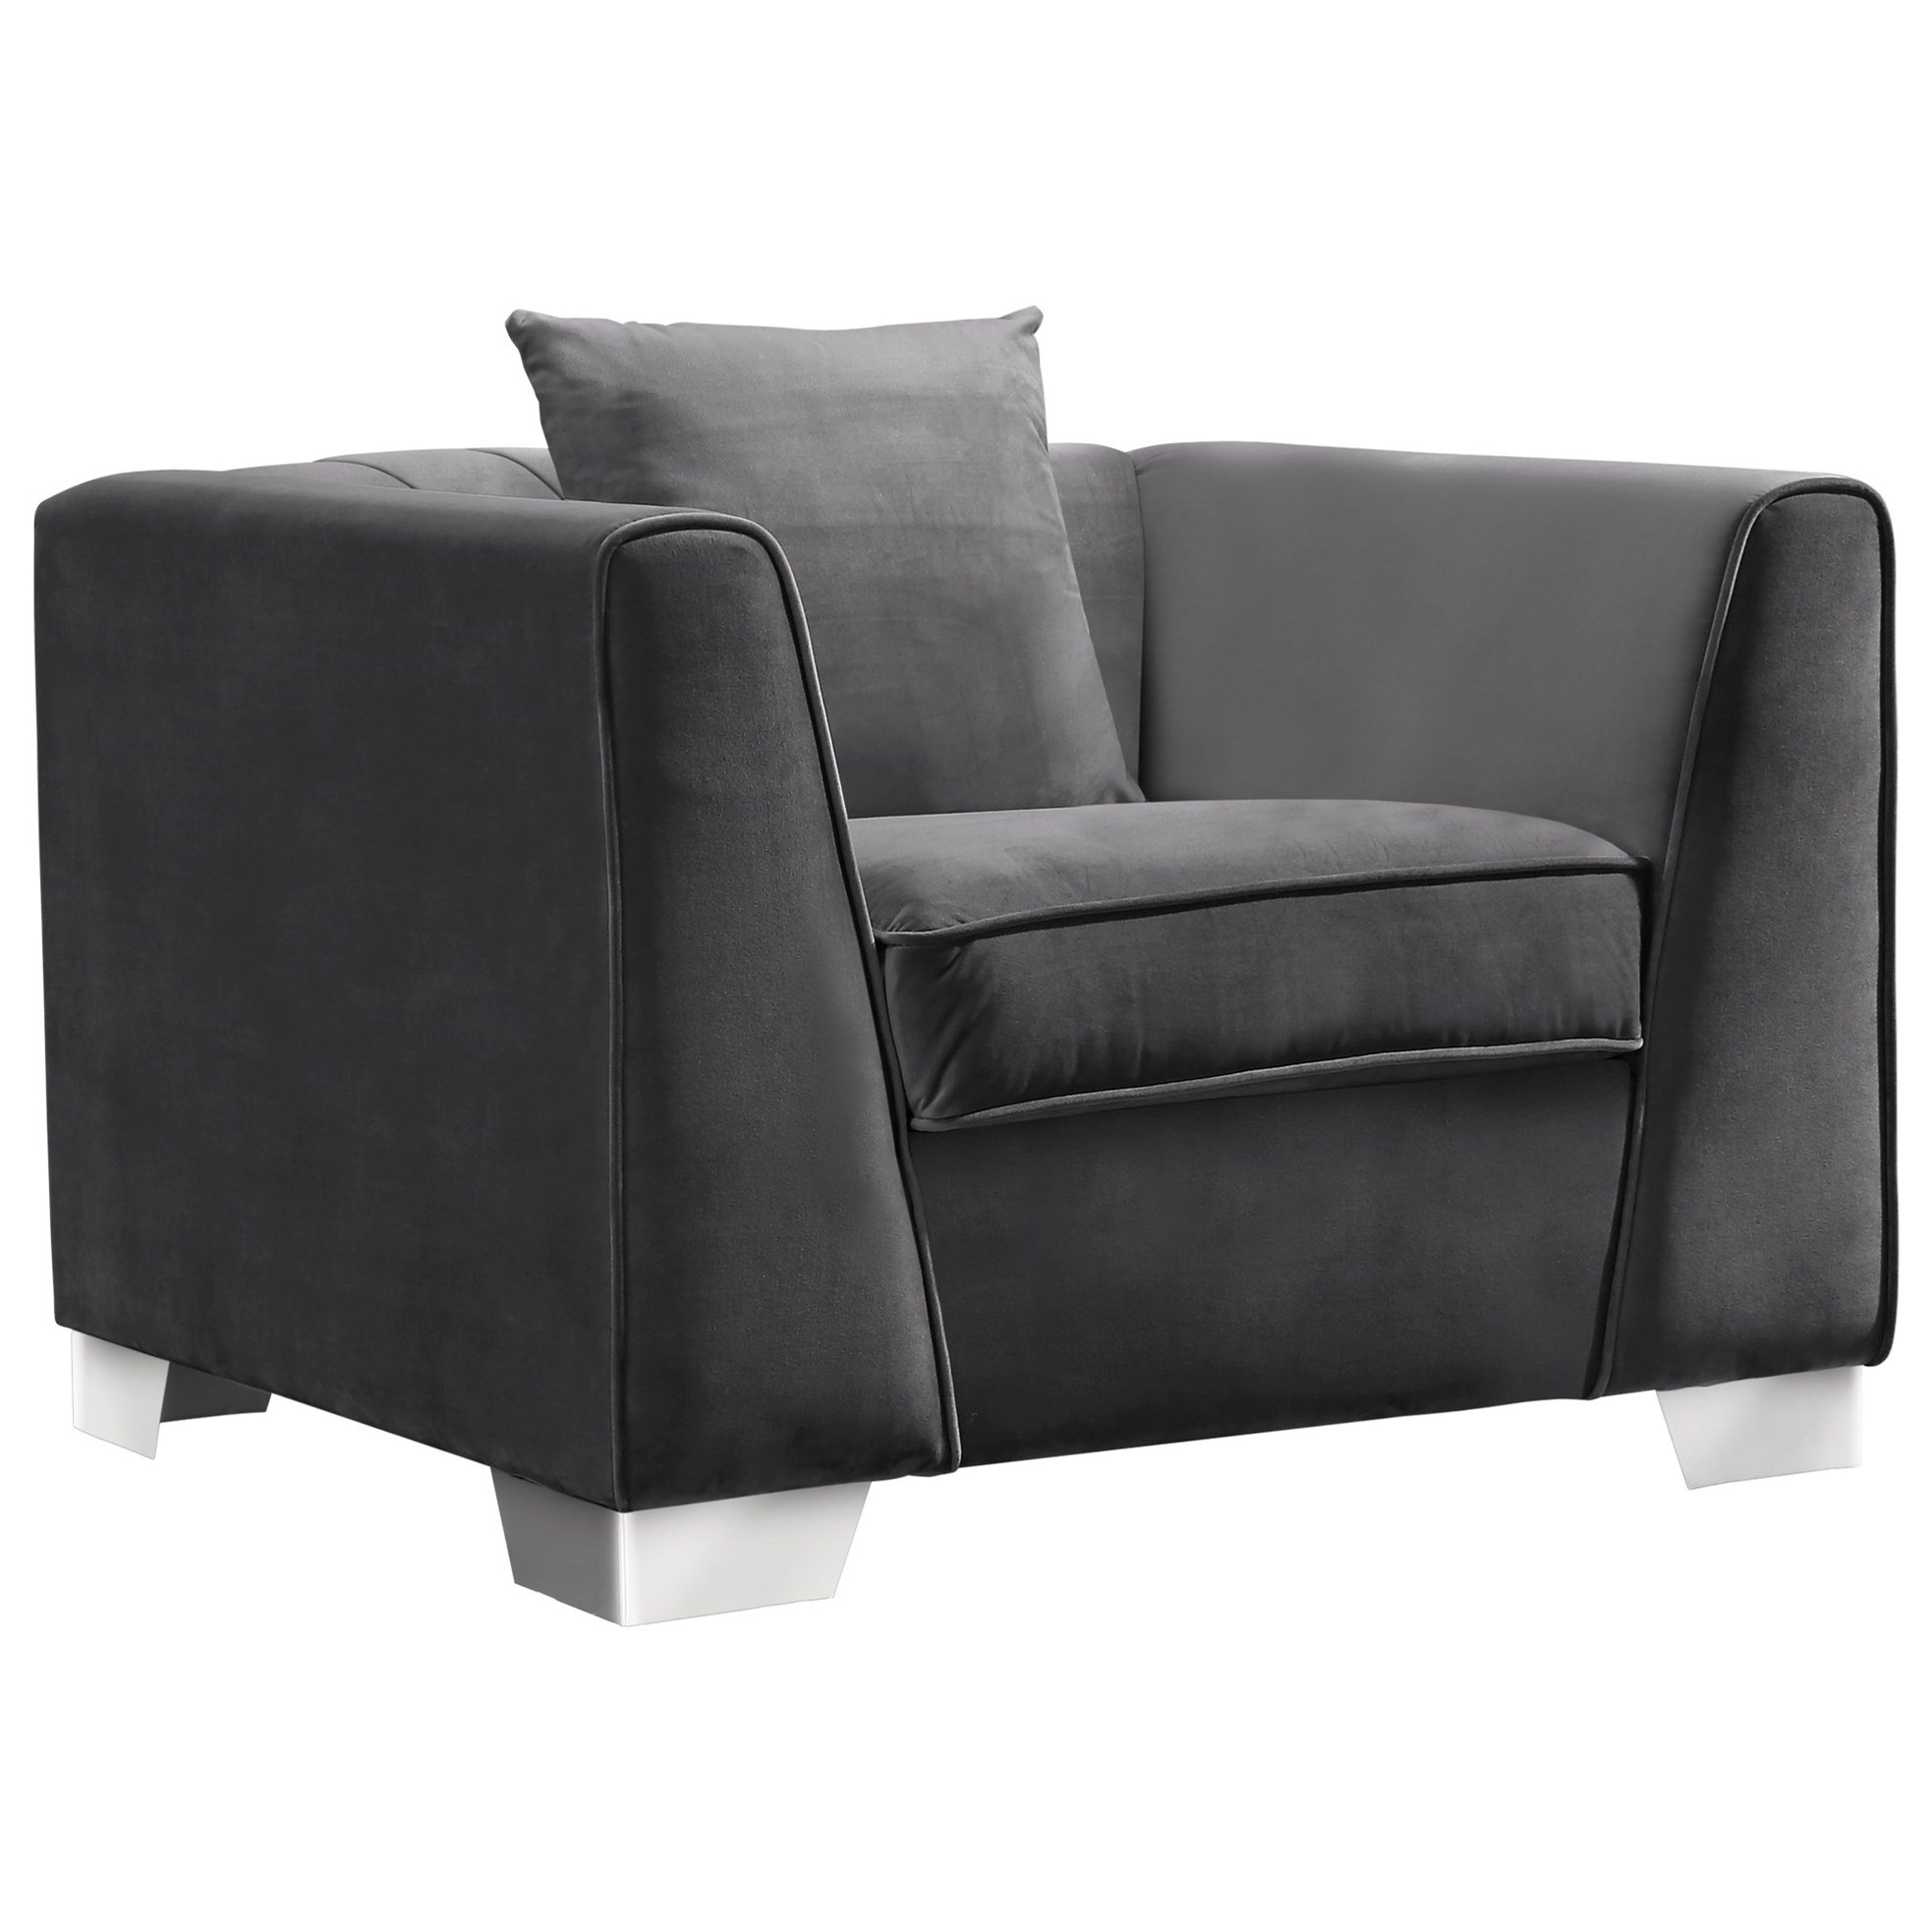 Cambridge Contemporary Chair at Sadler's Home Furnishings